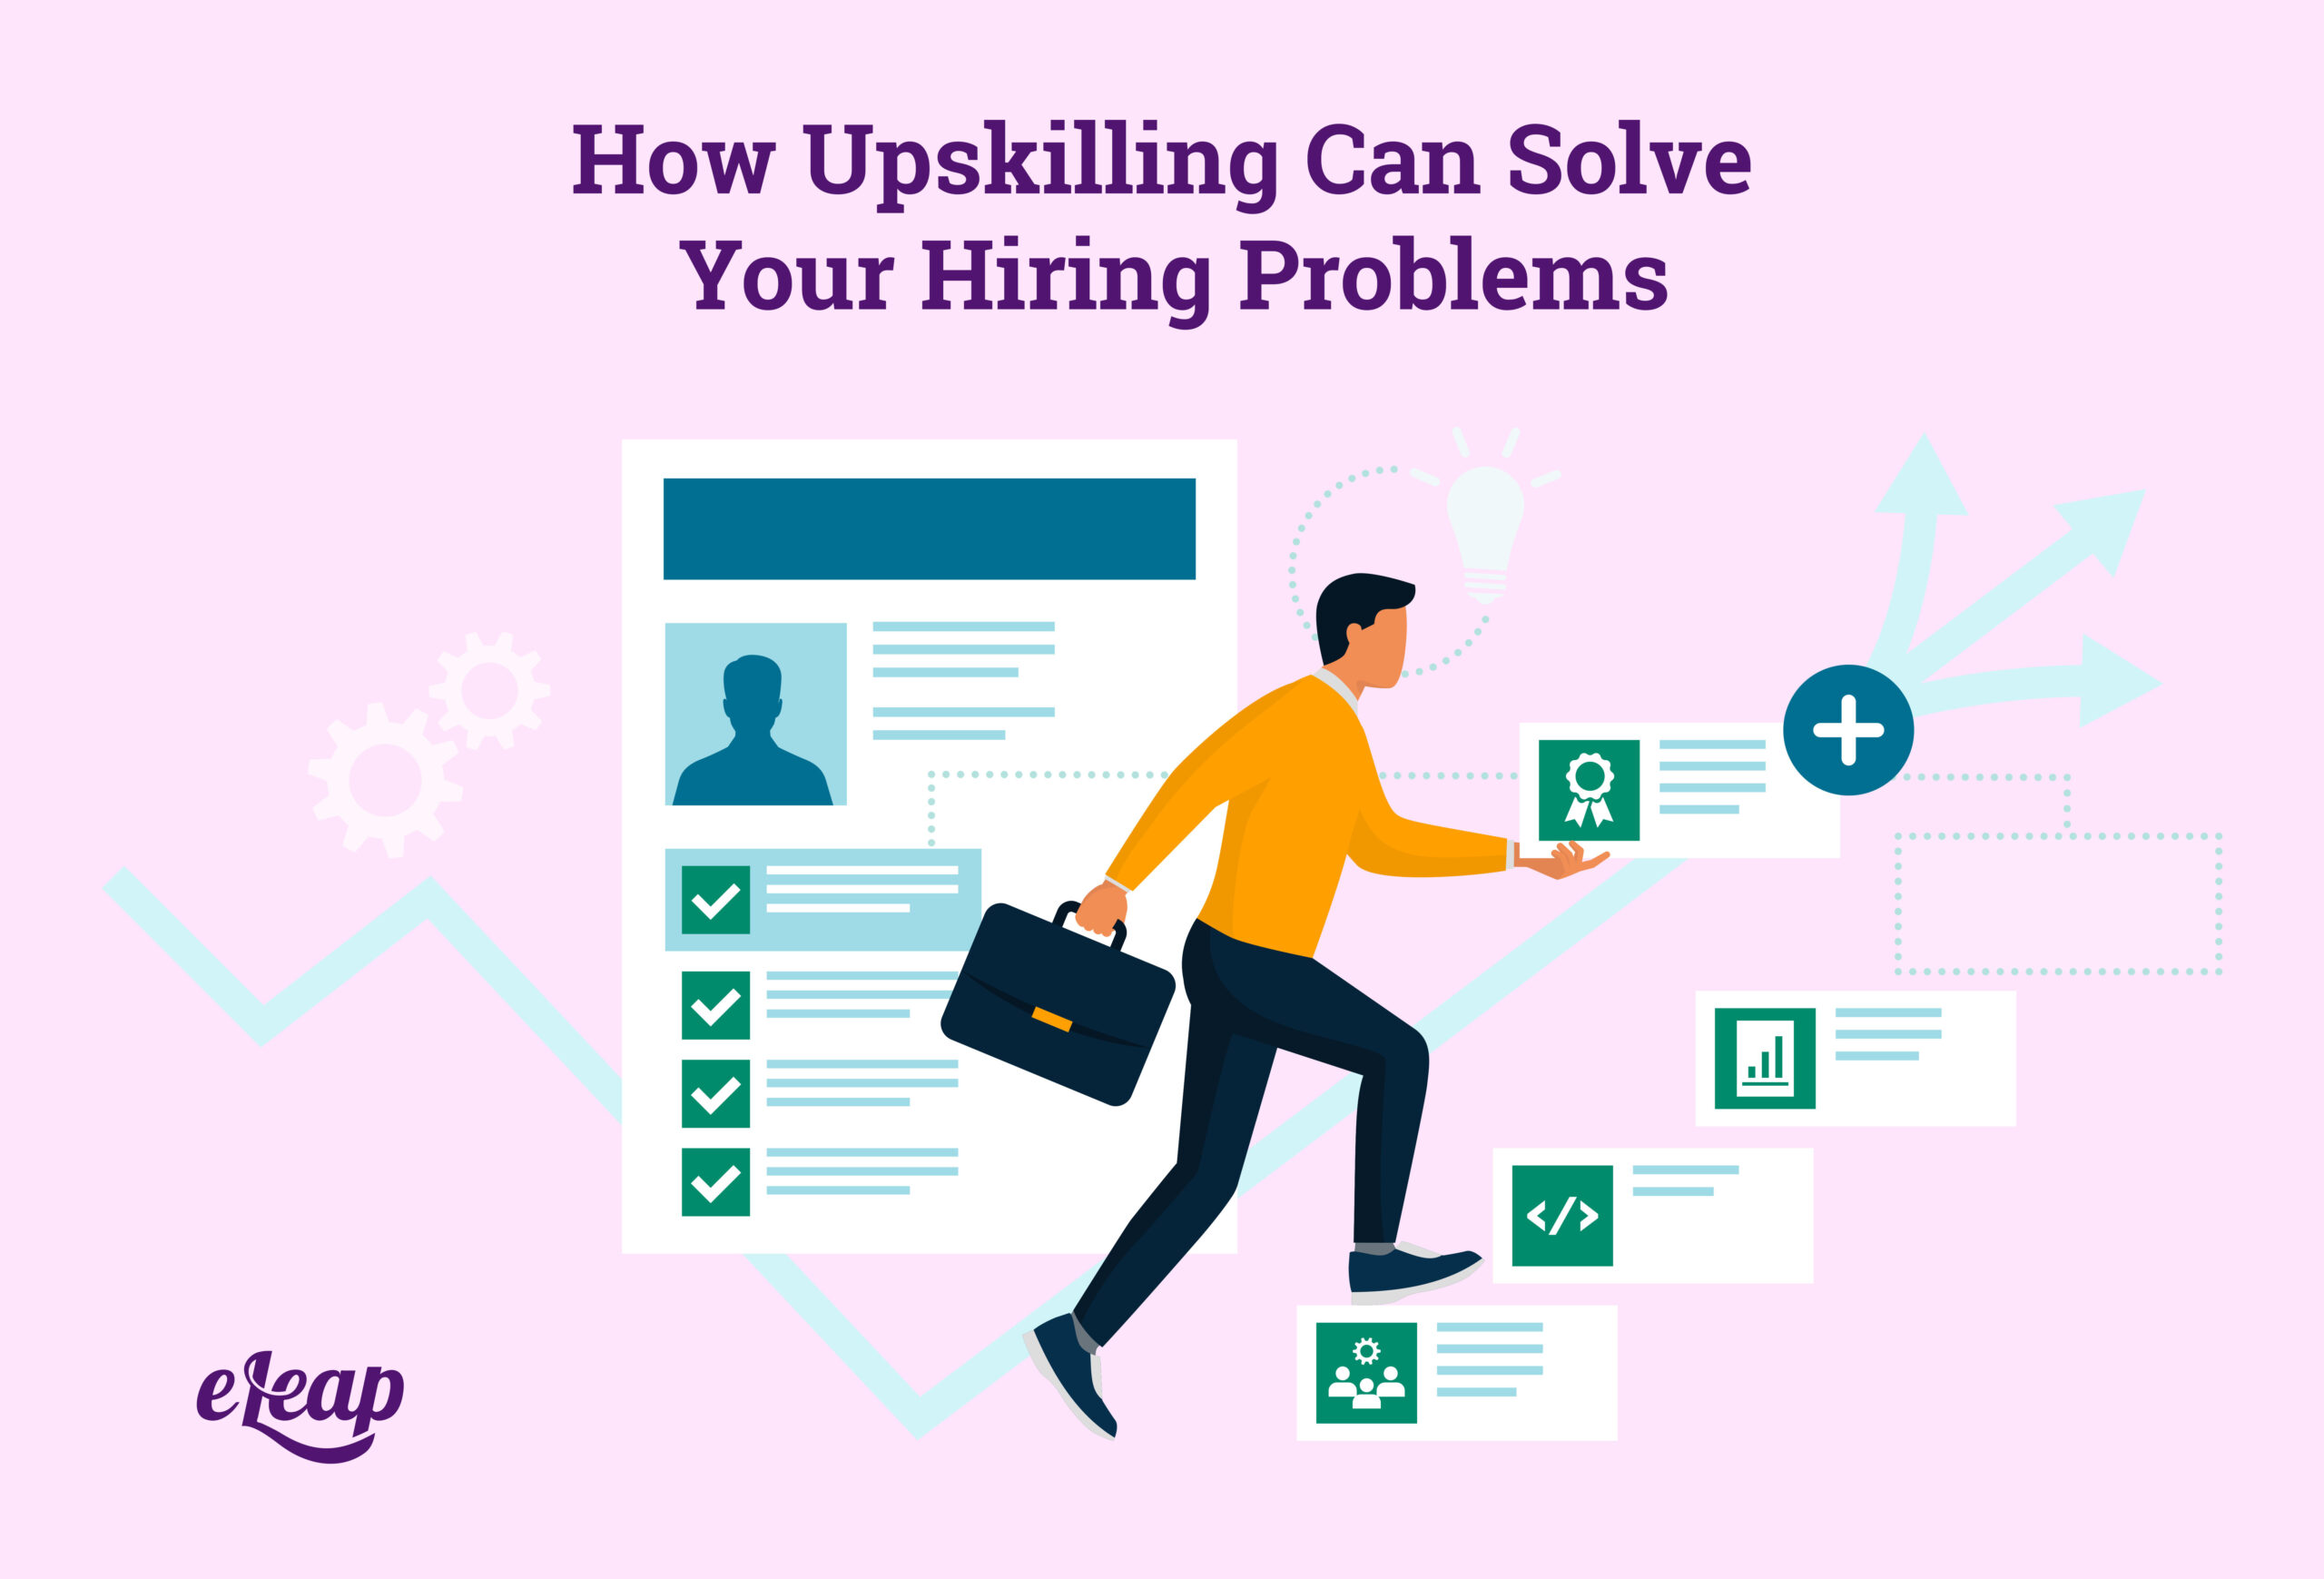 How Upskilling Can Solve Your Hiring Problems